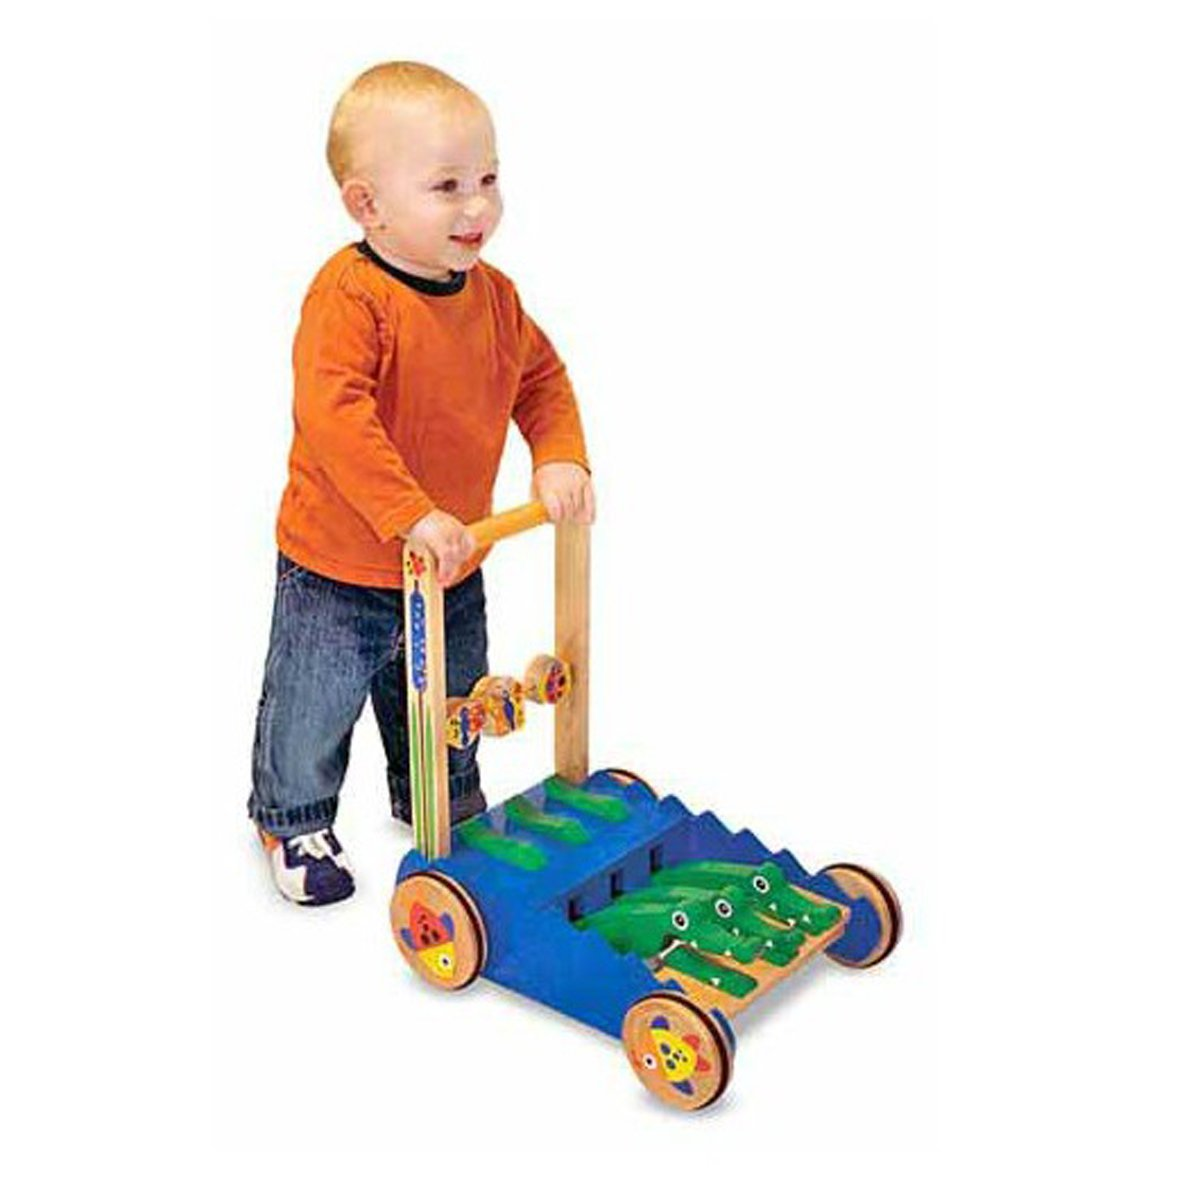 Pictures Of Baby Learning To Walk Toy Rock Cafe